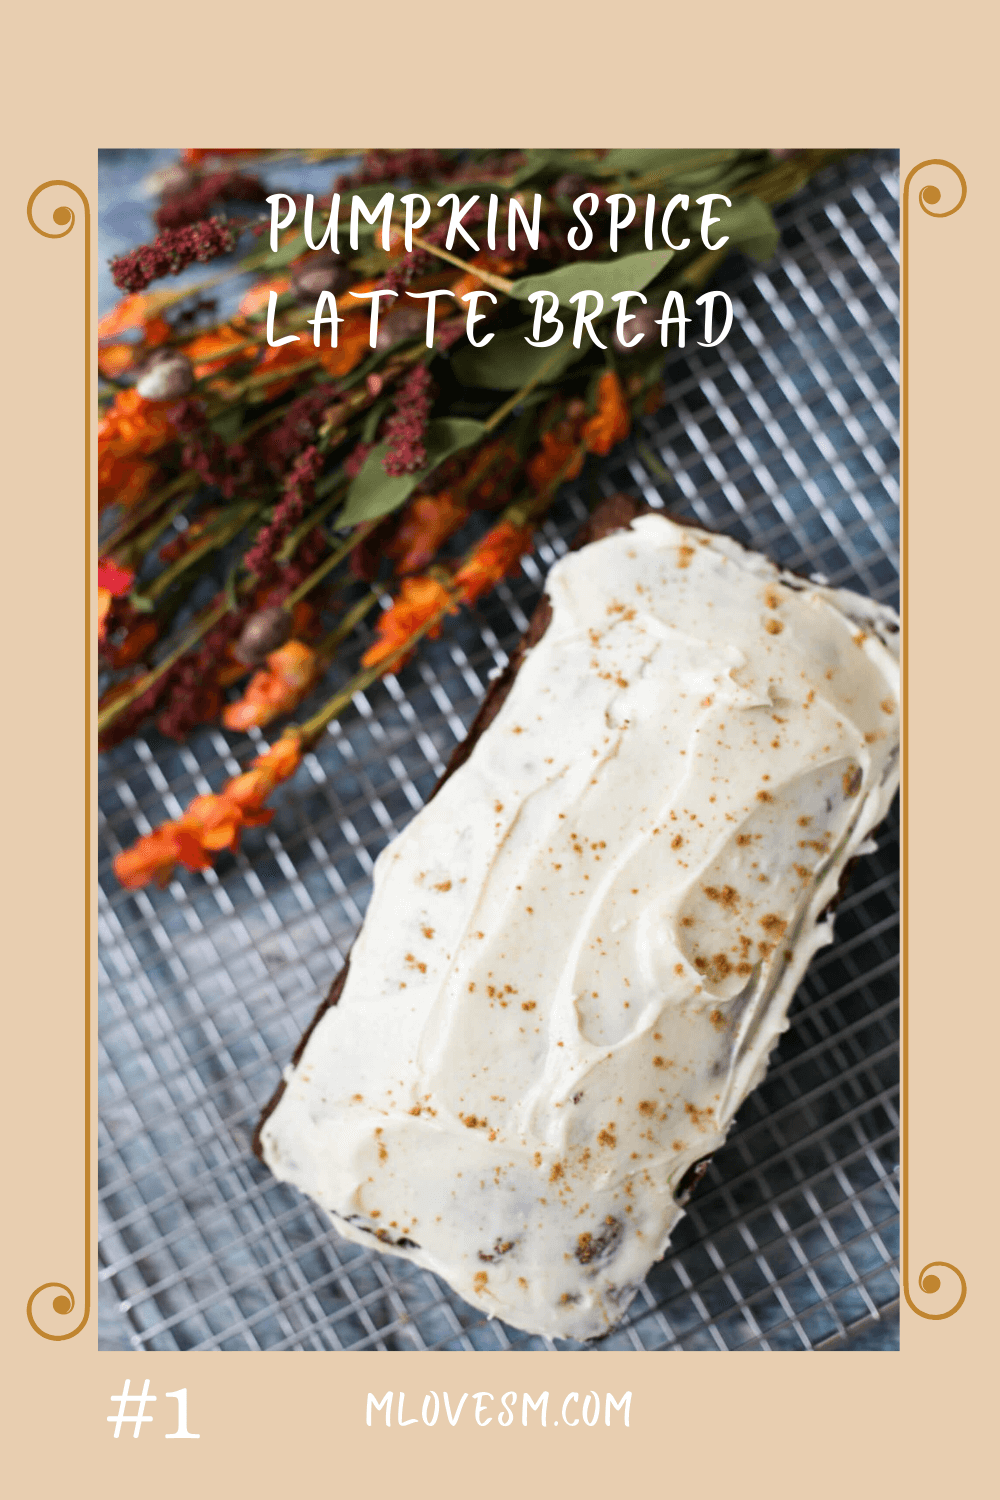 A delicious bread recipe to make this fall